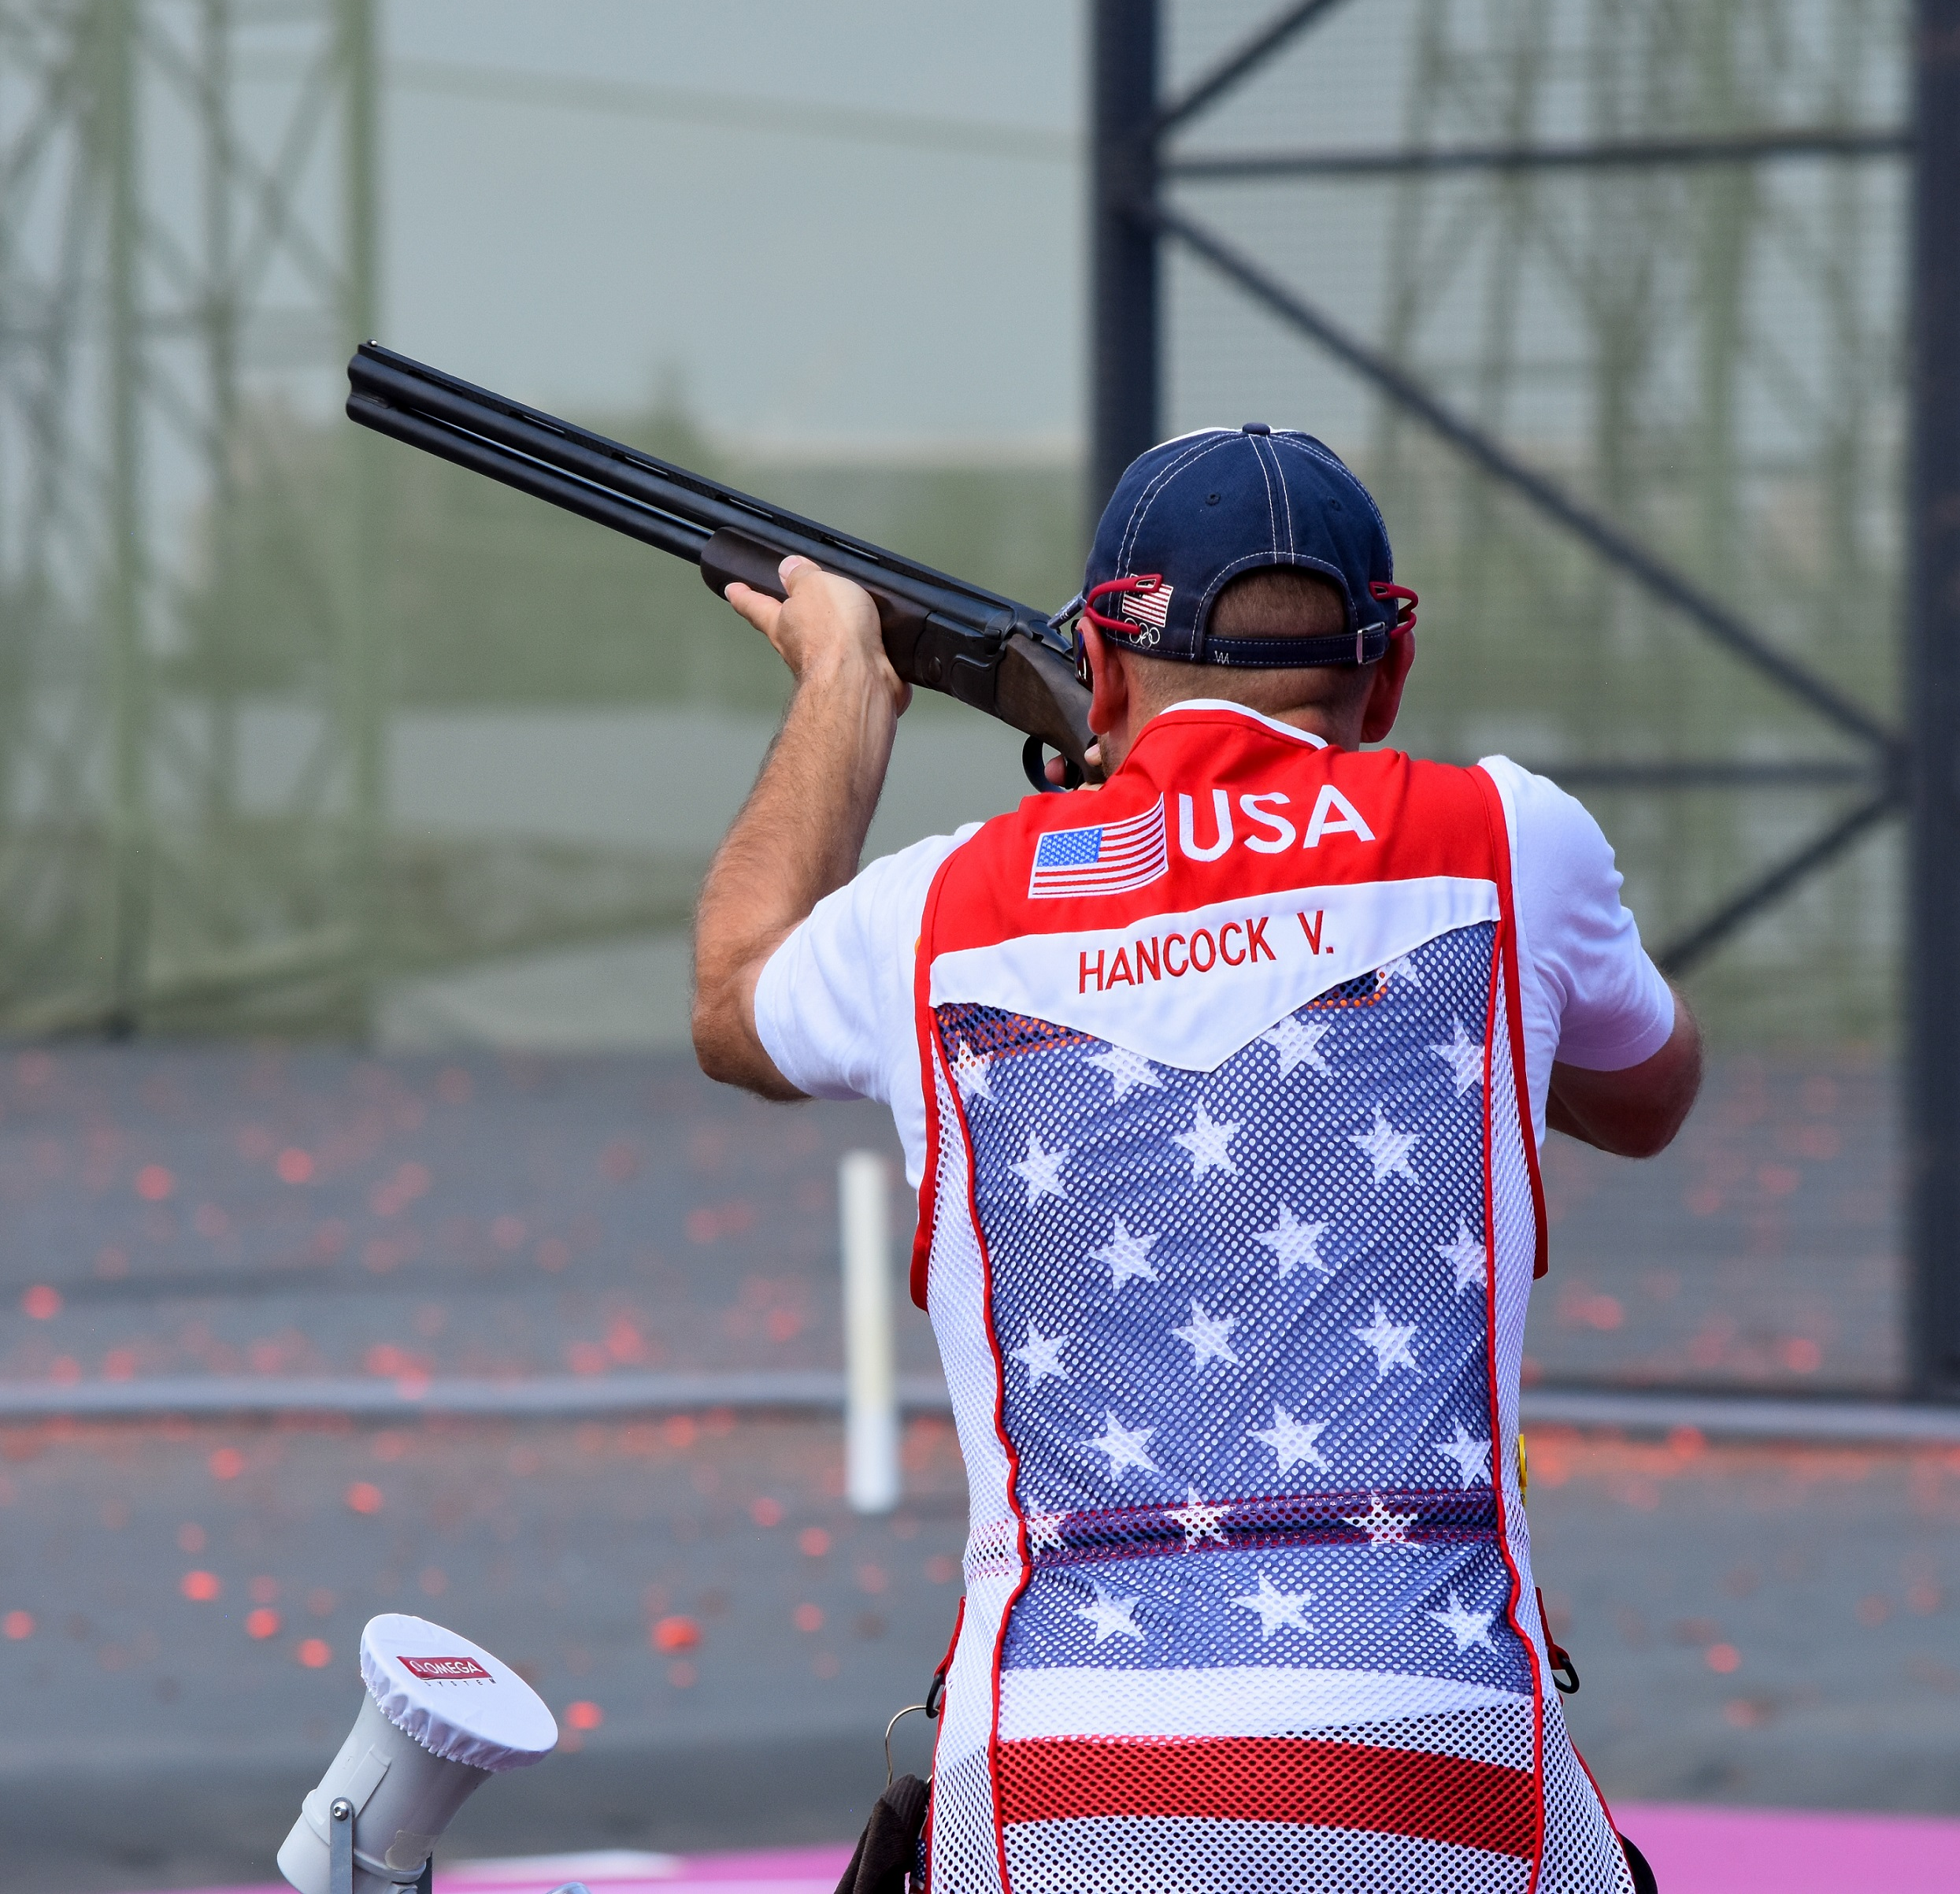 2021 Tokyo Olympic Medalists Lauded by Federal Ammunition